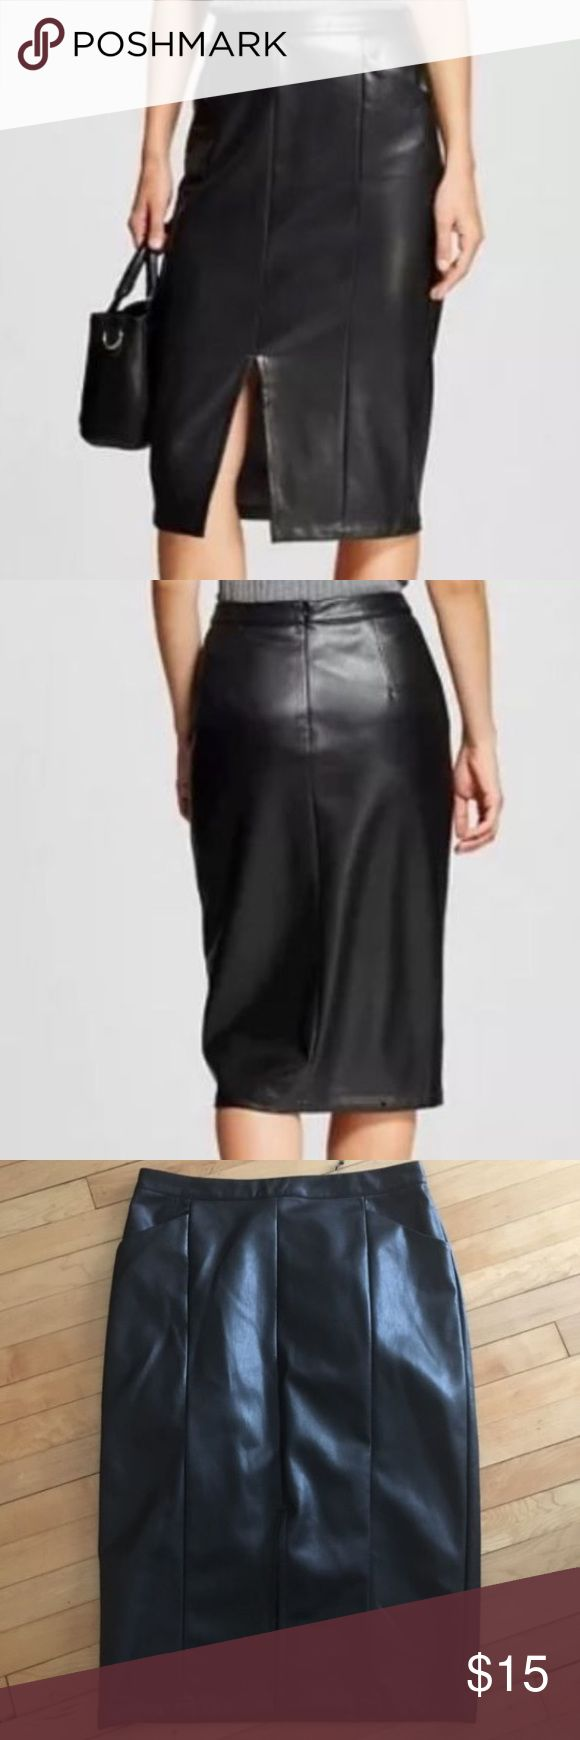 ✏️Faux Leather Pencil Skirt Who What Wear mid calf faux leather pencil skirt with slit in front and pockets on side Who What Wear Skirts Pencil